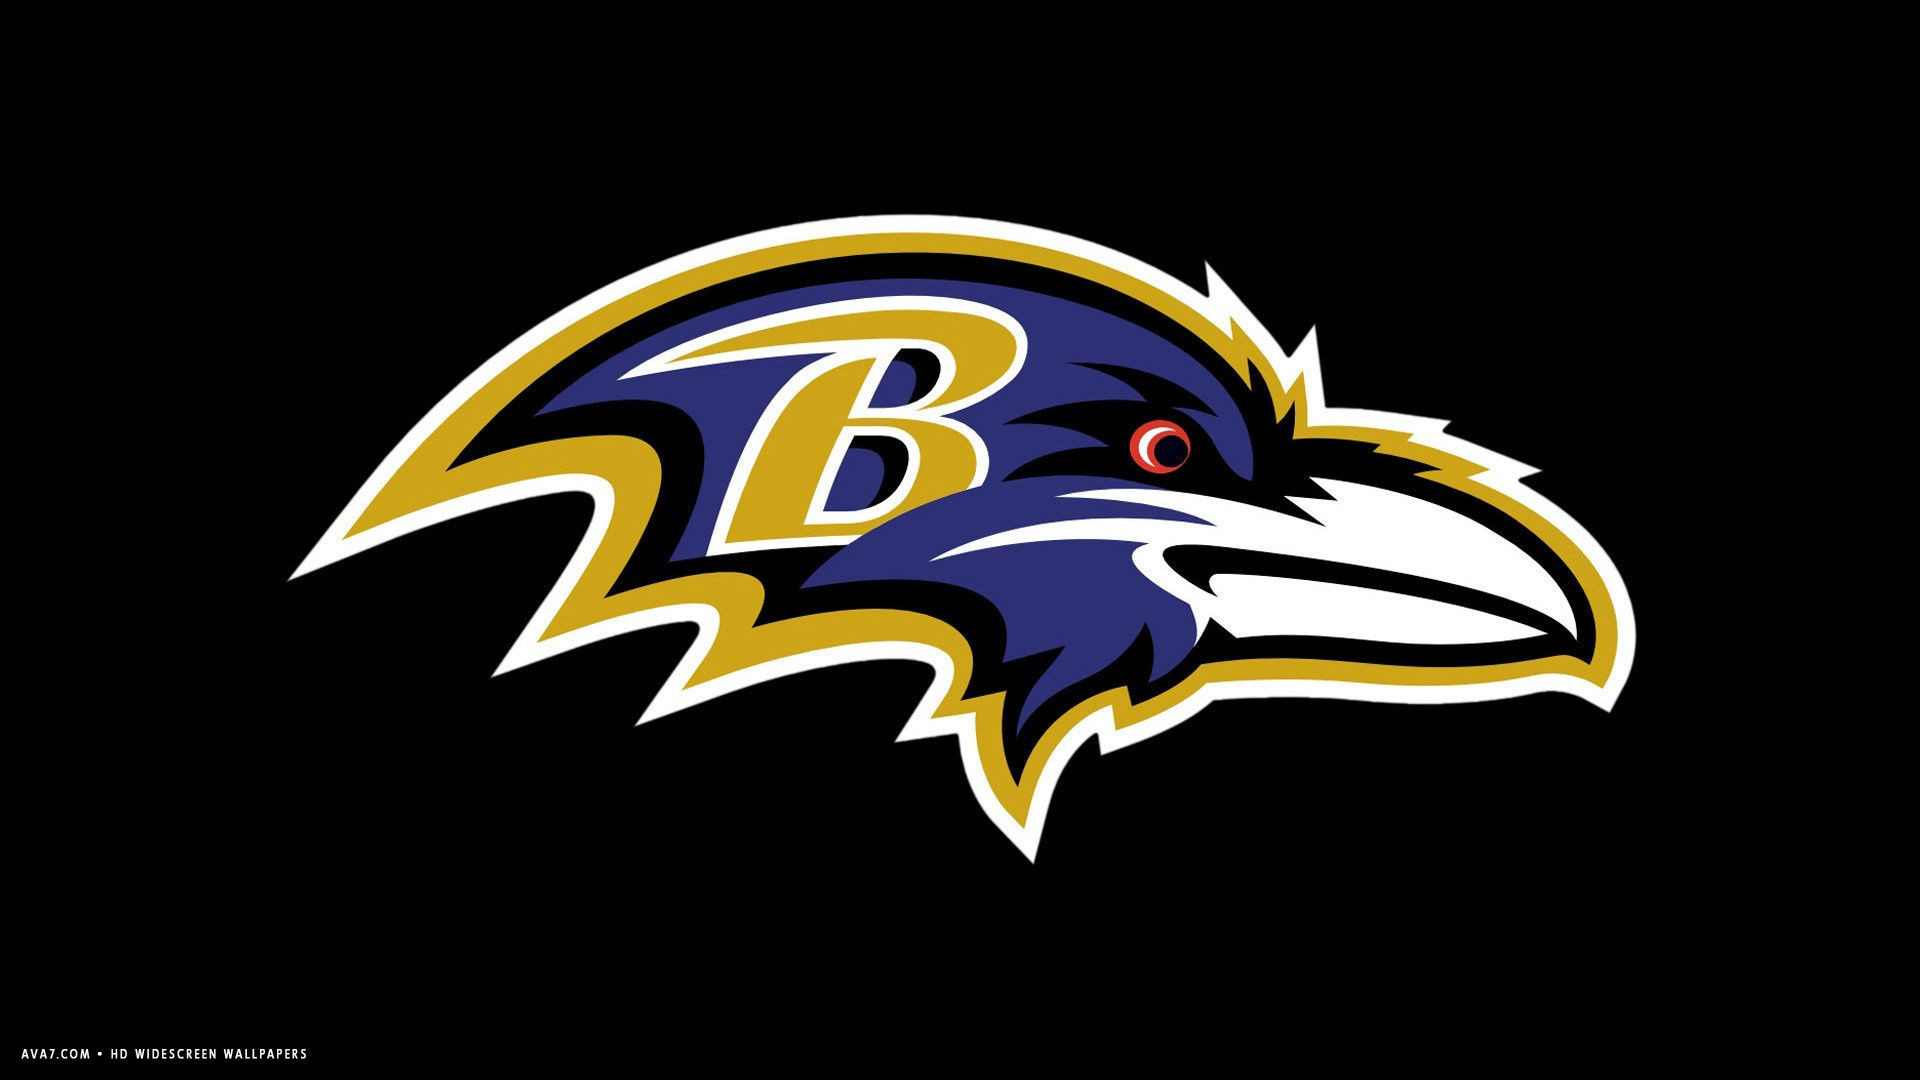 1920x1080 baltimore ravens football logo hd wallpaper hd widescreen wallpaper